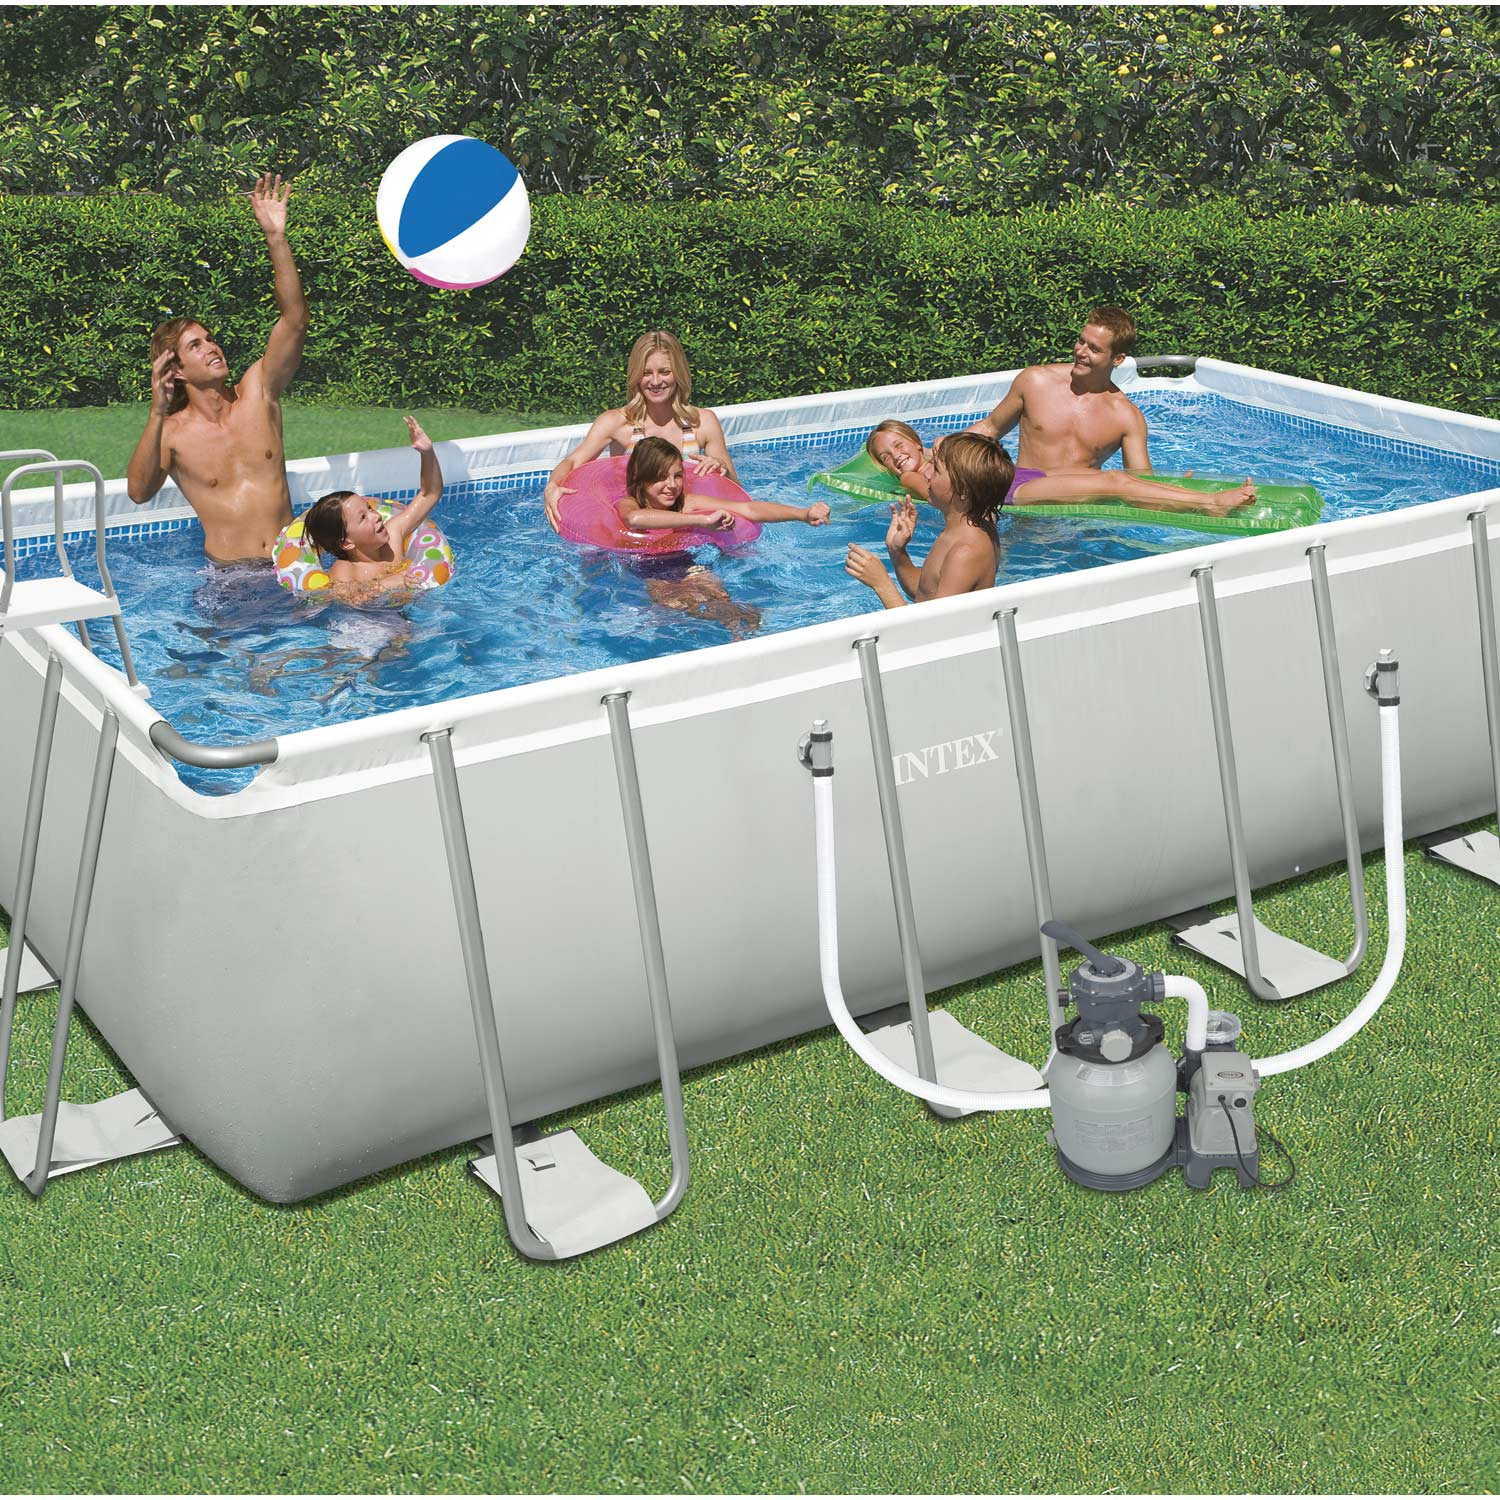 Piscine hors sol autoportante tubulaire ultra silver intex for Enrouleur bache piscine hors sol tubulaire intex